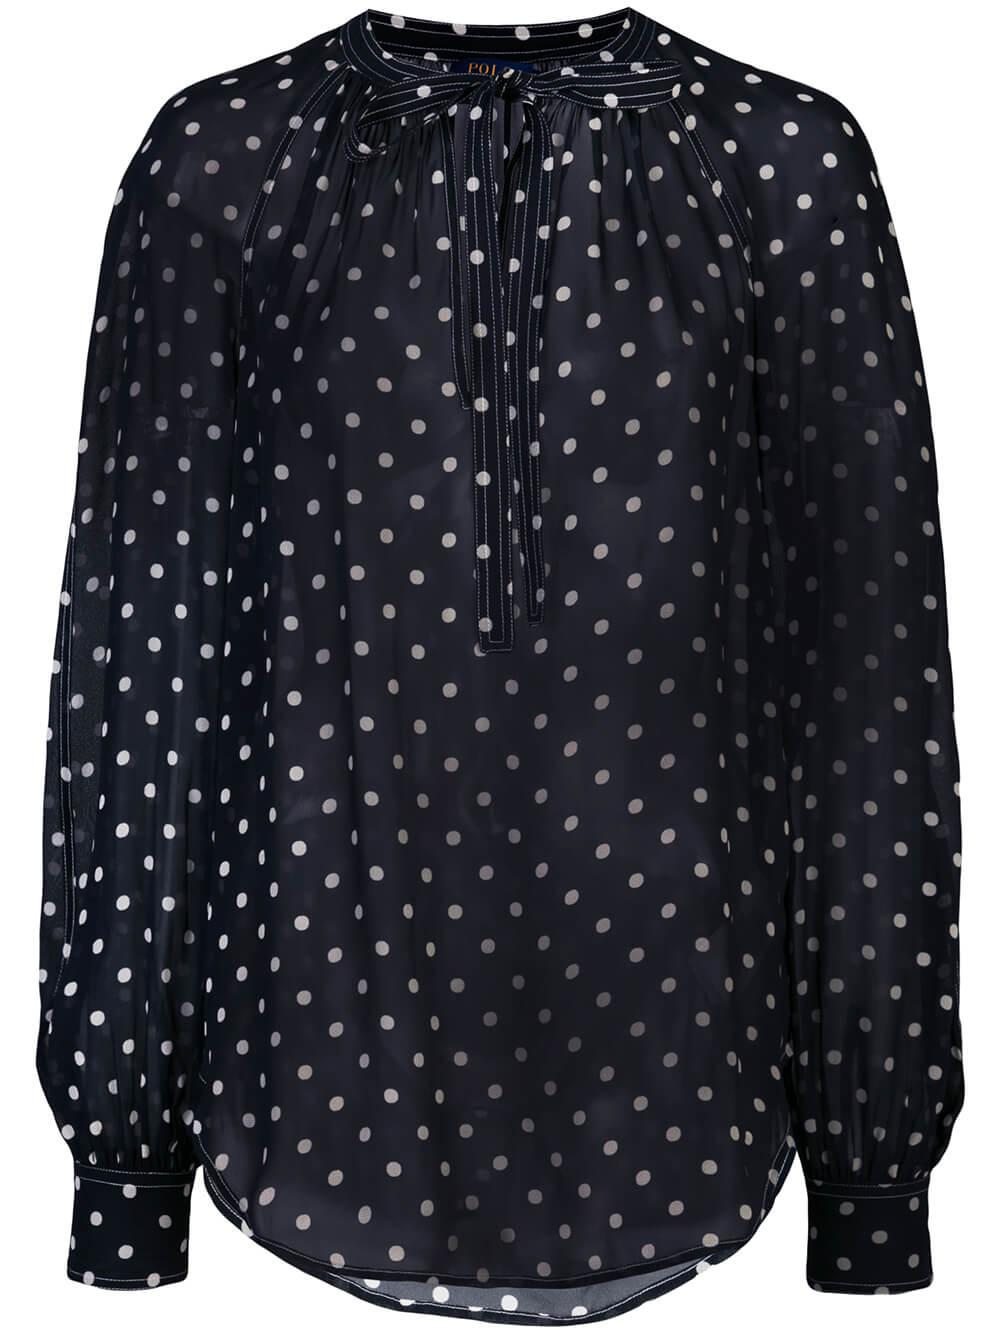 Long Sleeve Polka Dot Blouse